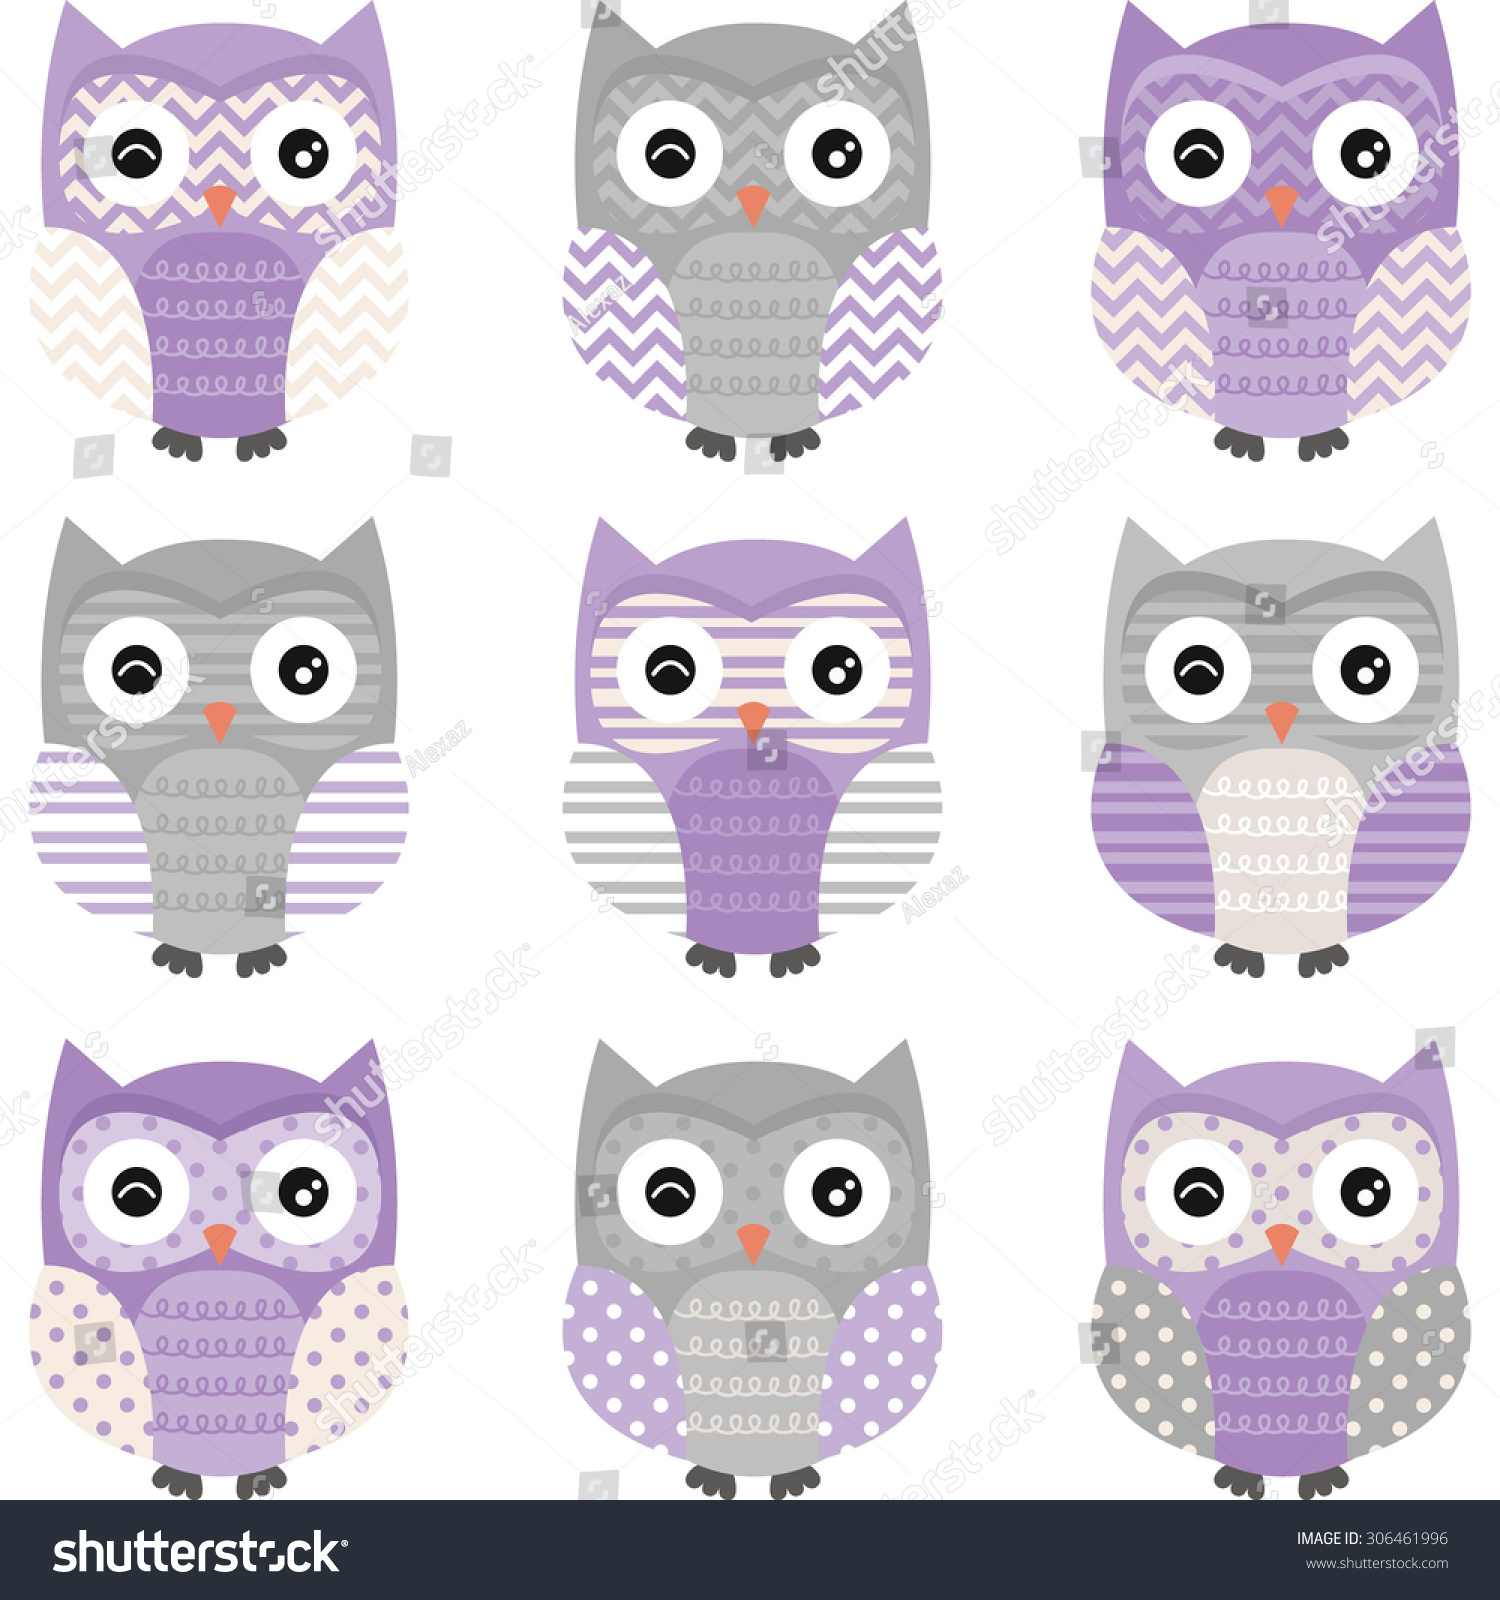 Chevron owl background